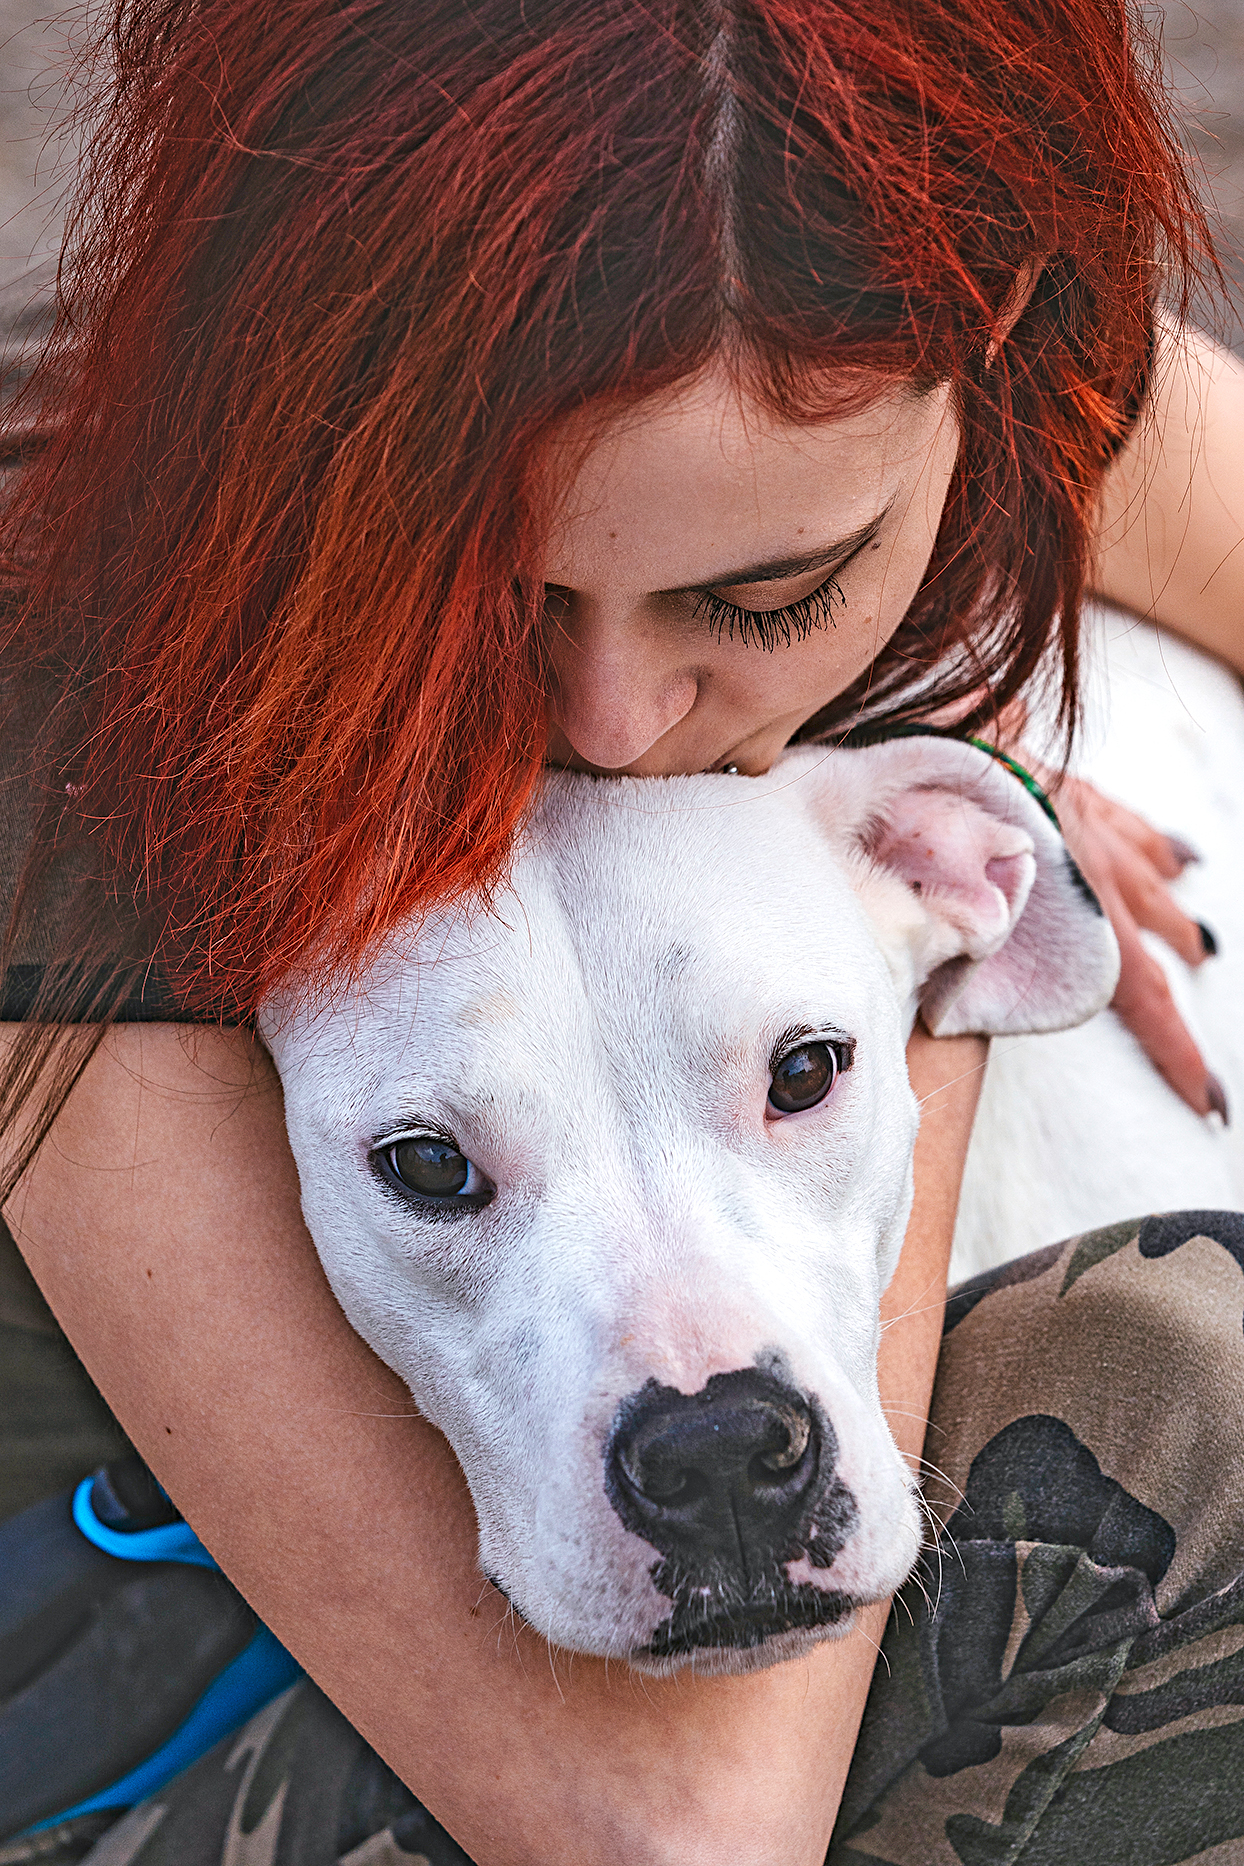 woman with dyed red hair hugging and kissing her dogo argentino on the head